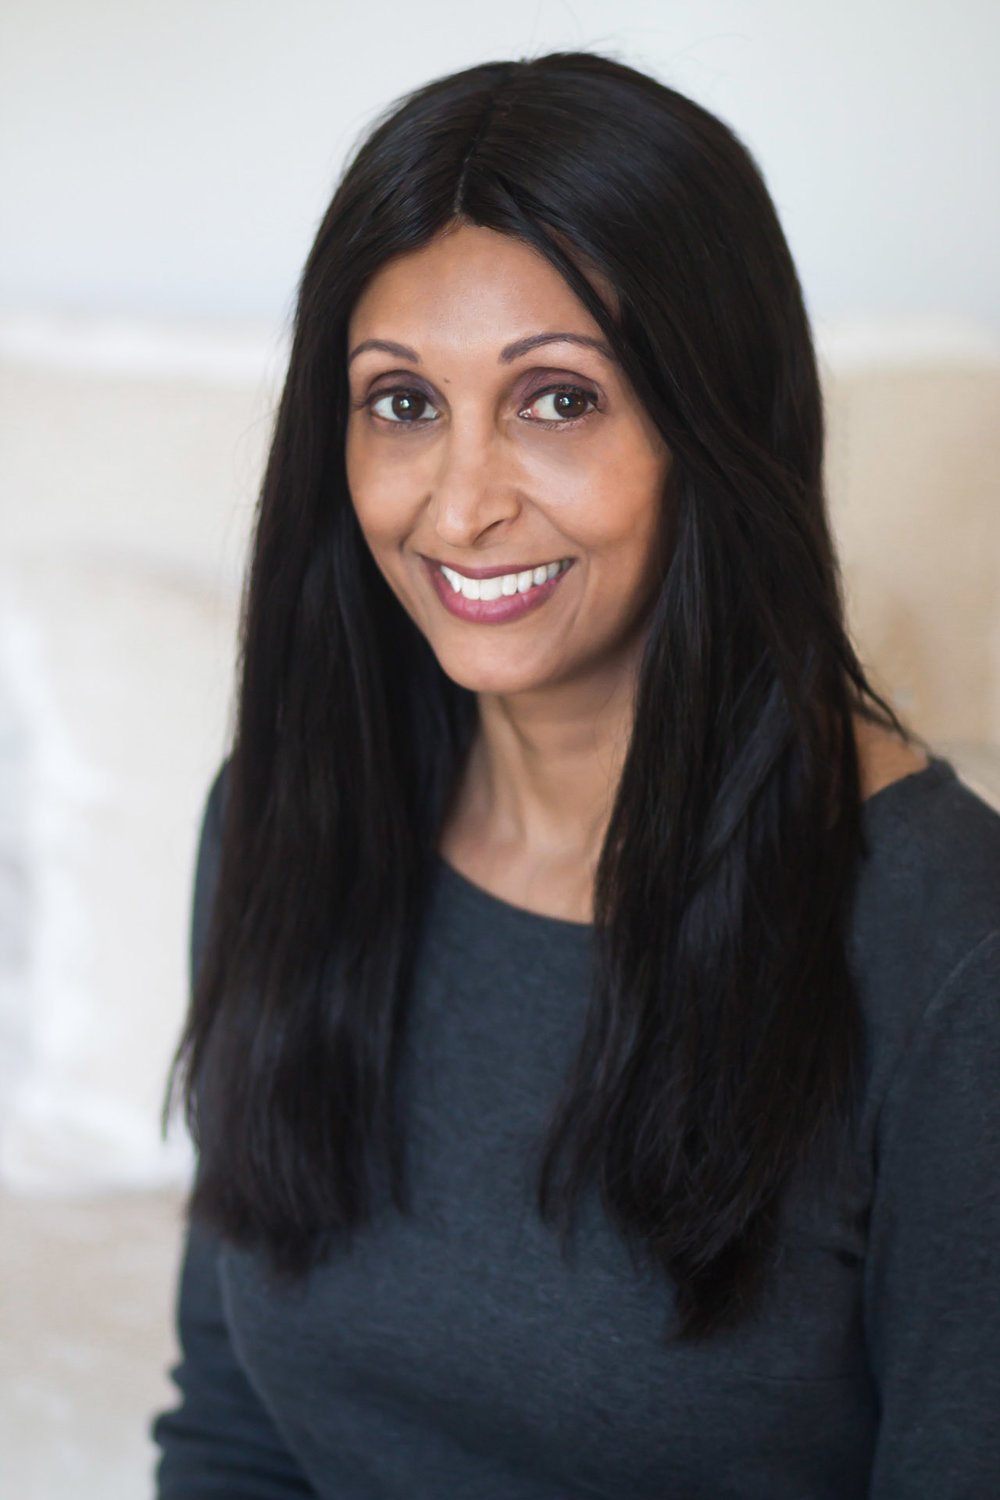 Raana Zia, Author